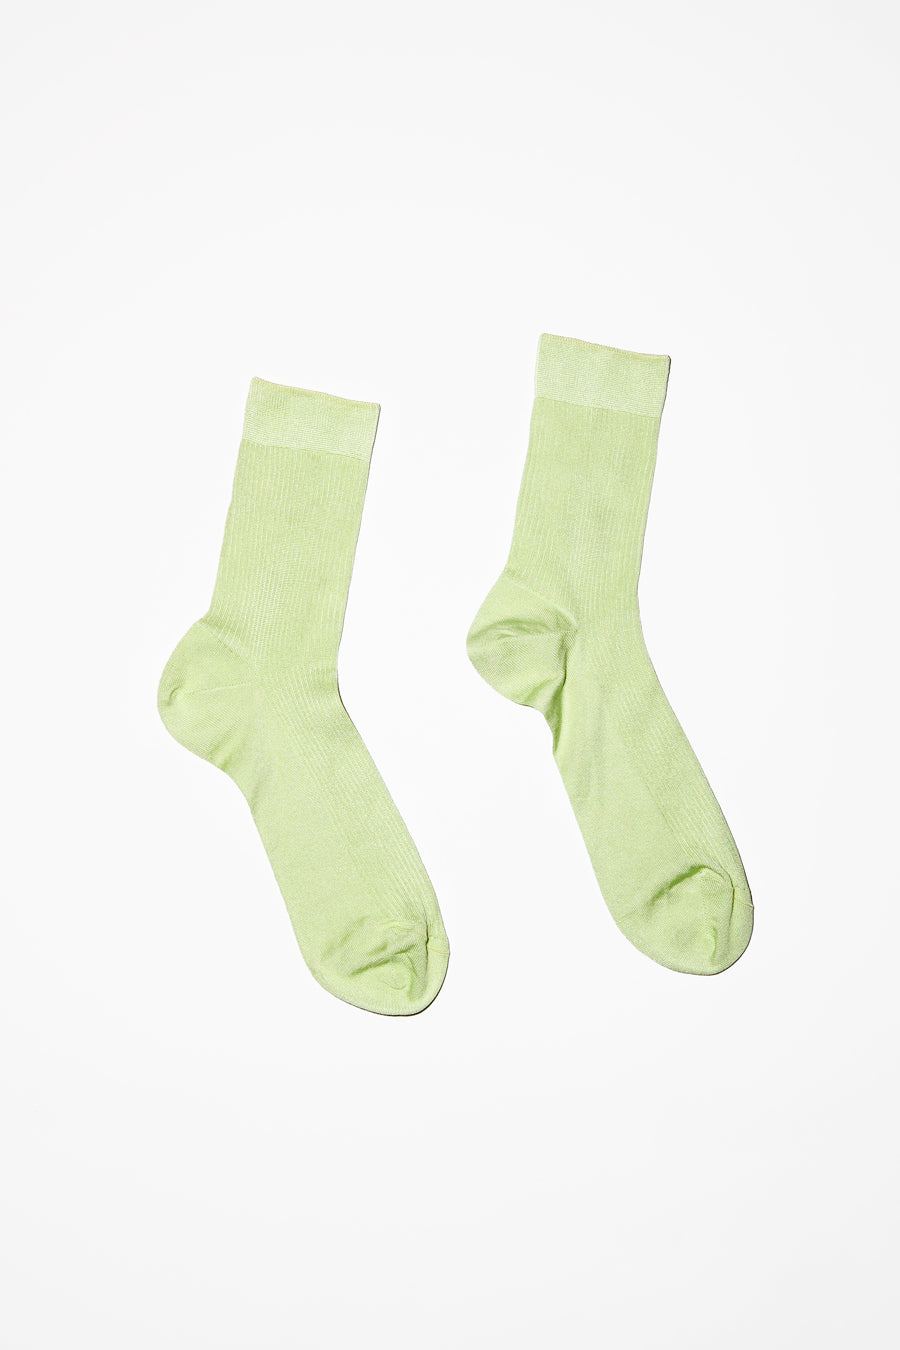 Maria La Rosa Silk Ribbed Ankle Sock in Baccello